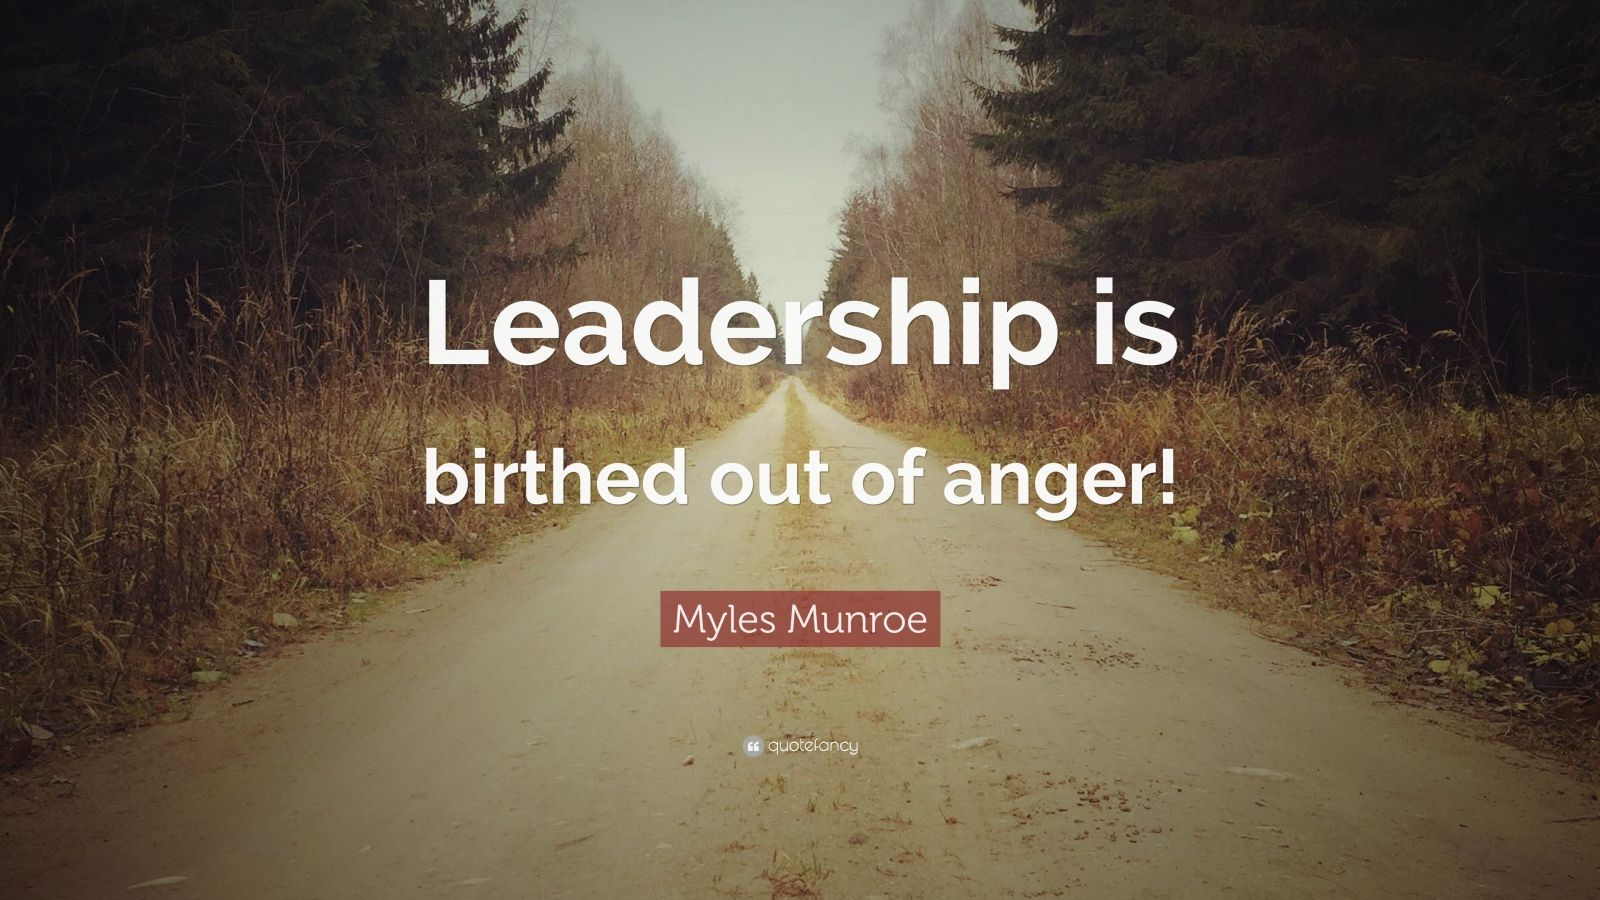 Myles Munroe Quote: Leadership is birthed out of anger